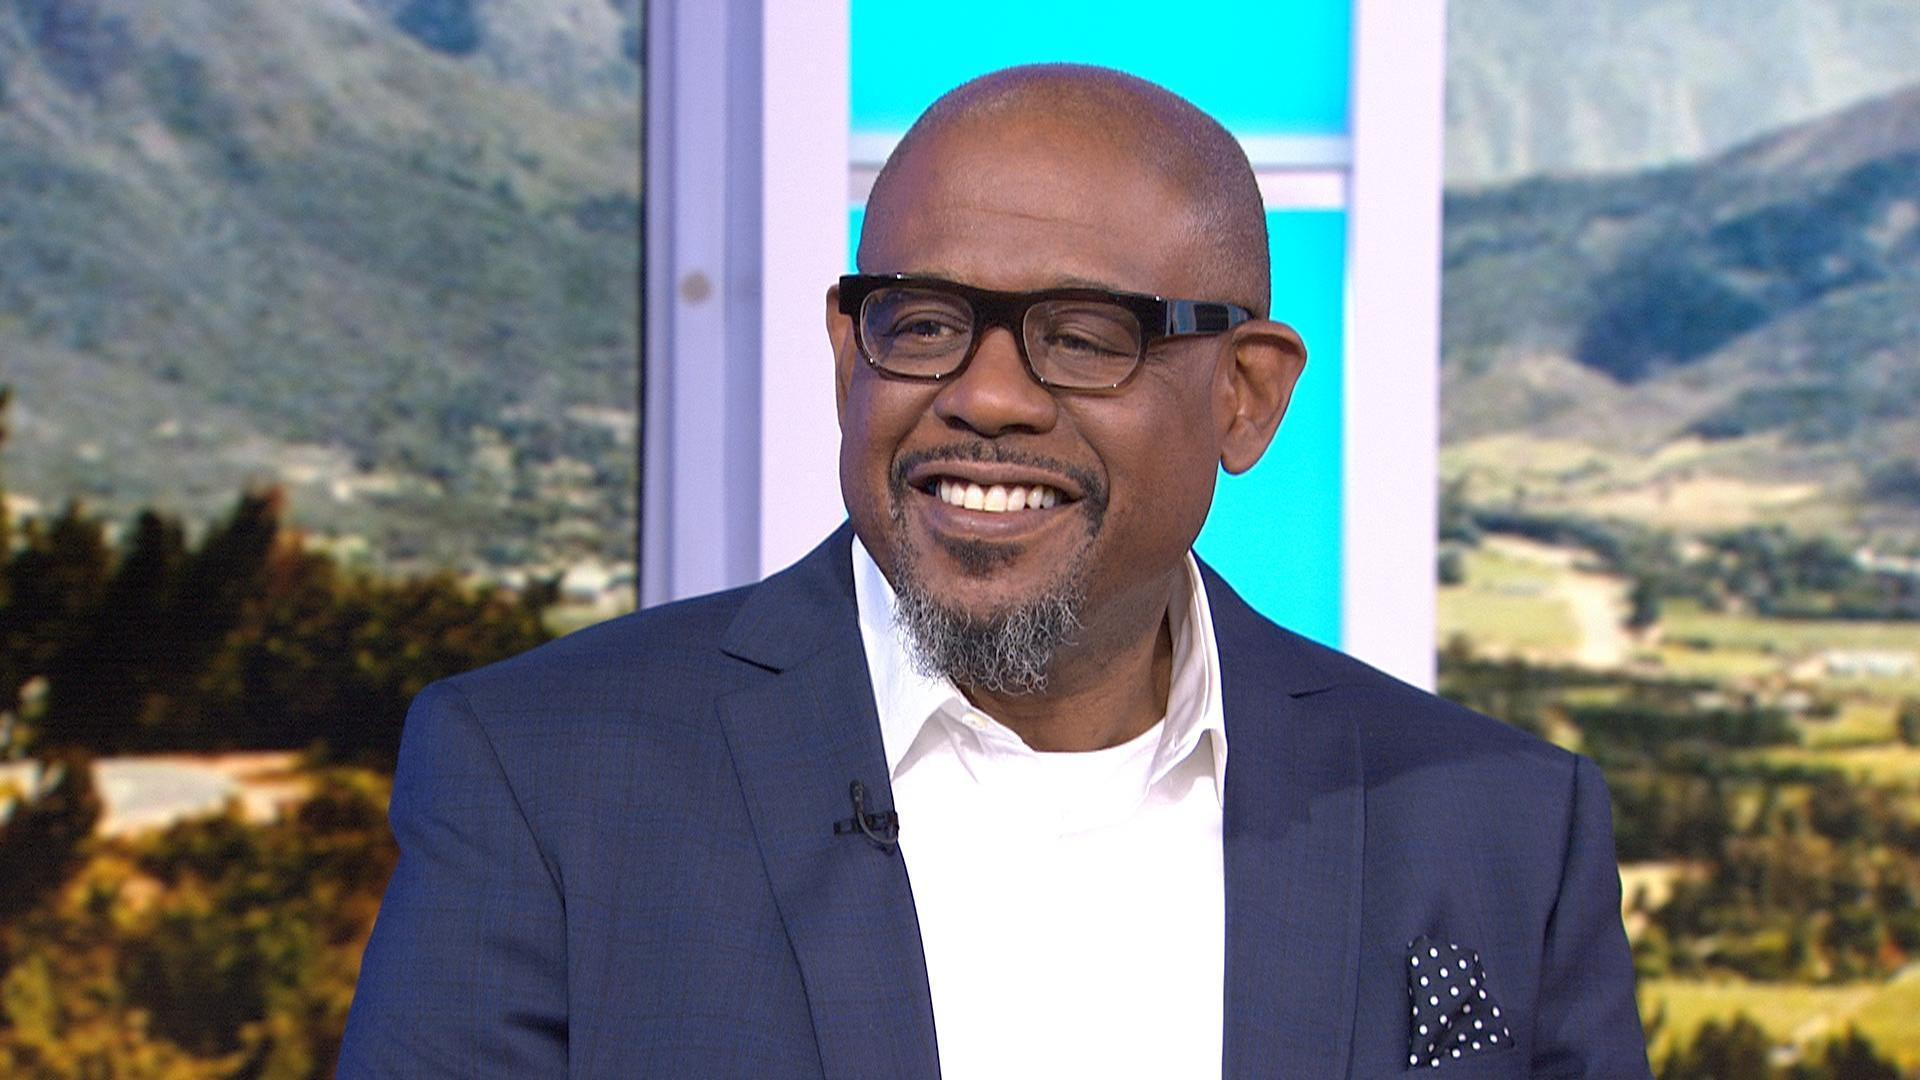 Forest Whitaker talks about playing Desmond Tutu in 'The Forgiven'